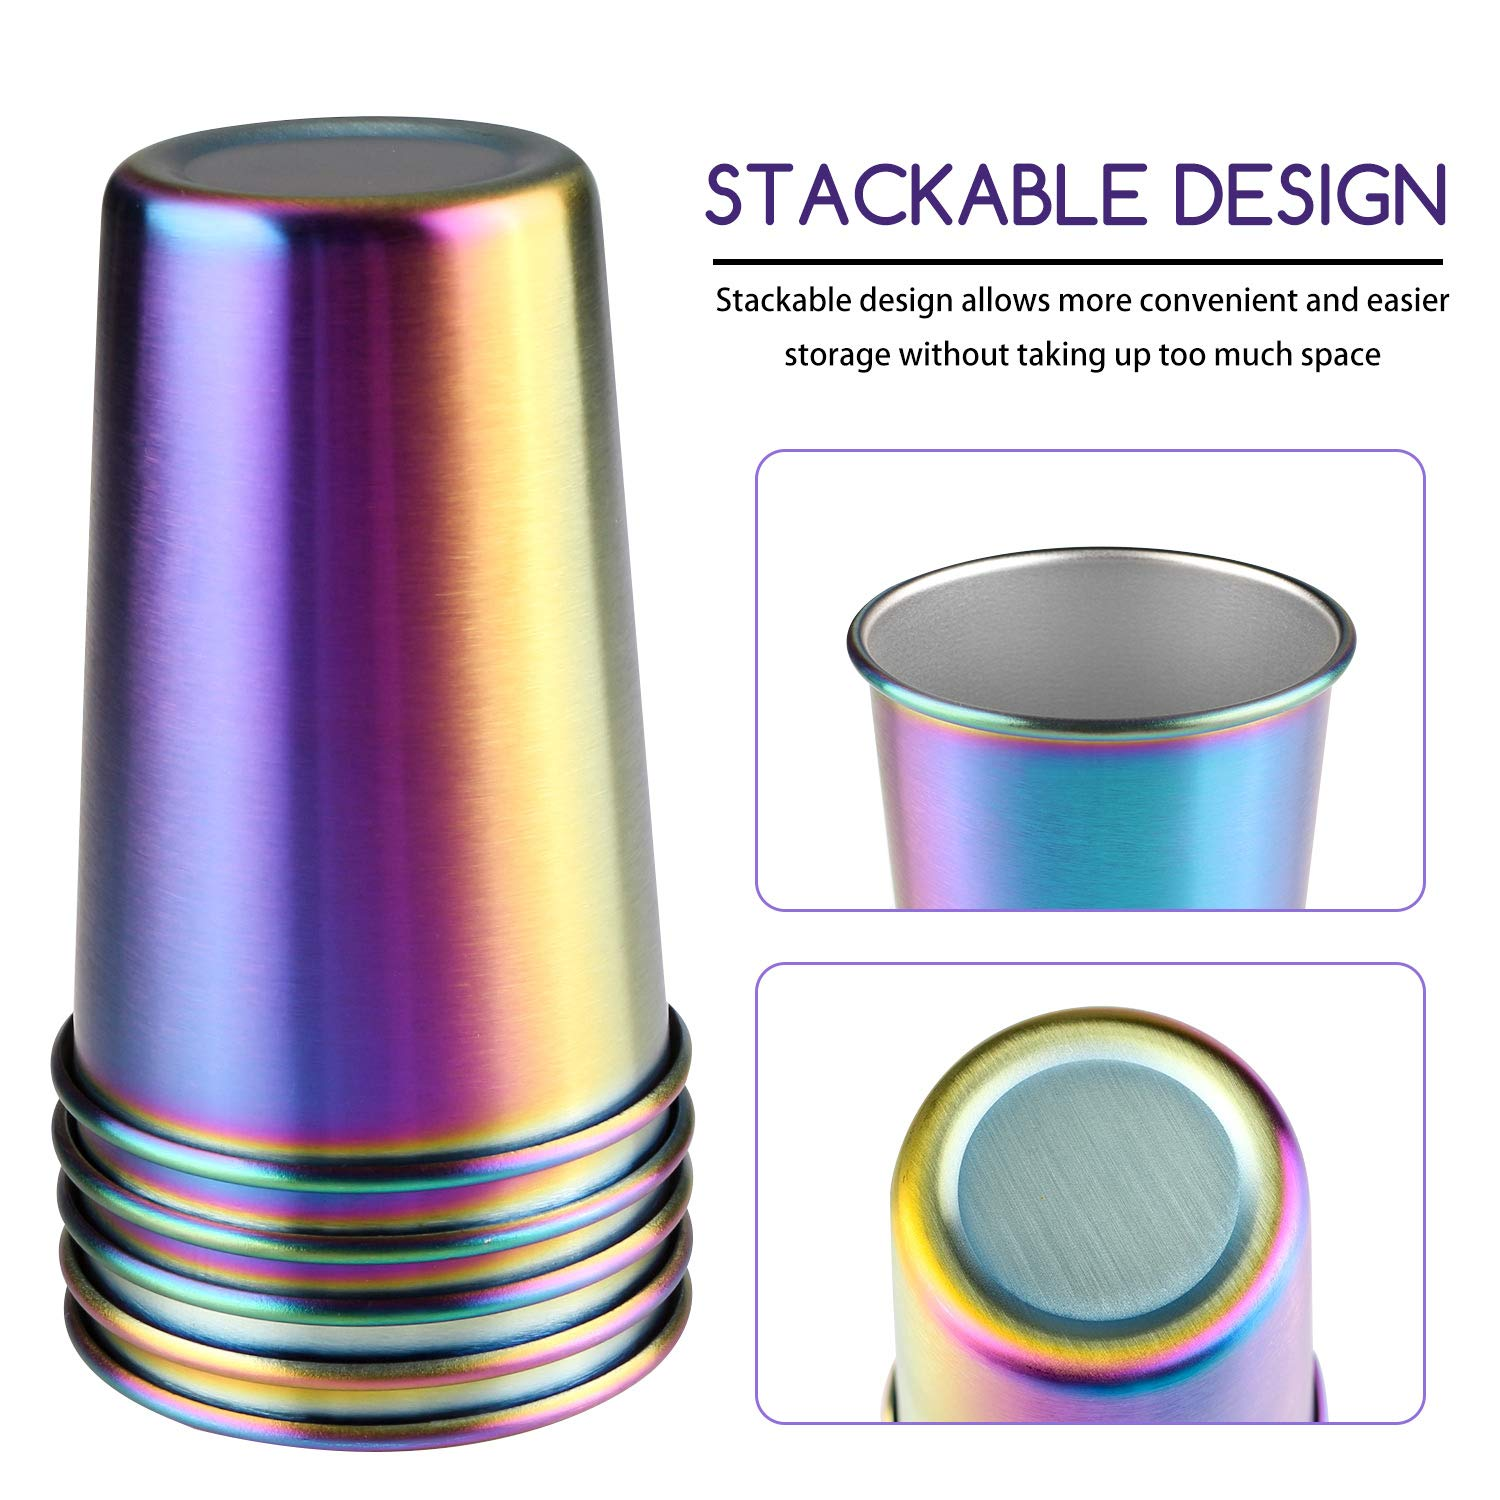 Rainbow Party Cups, Kereda Stainless Steel Cups 16oz 5-Pack Premium Drinking Glasses Unbreakable Colorful Tumblers BPA Free Eco Friendly by KEREDA (Image #2)